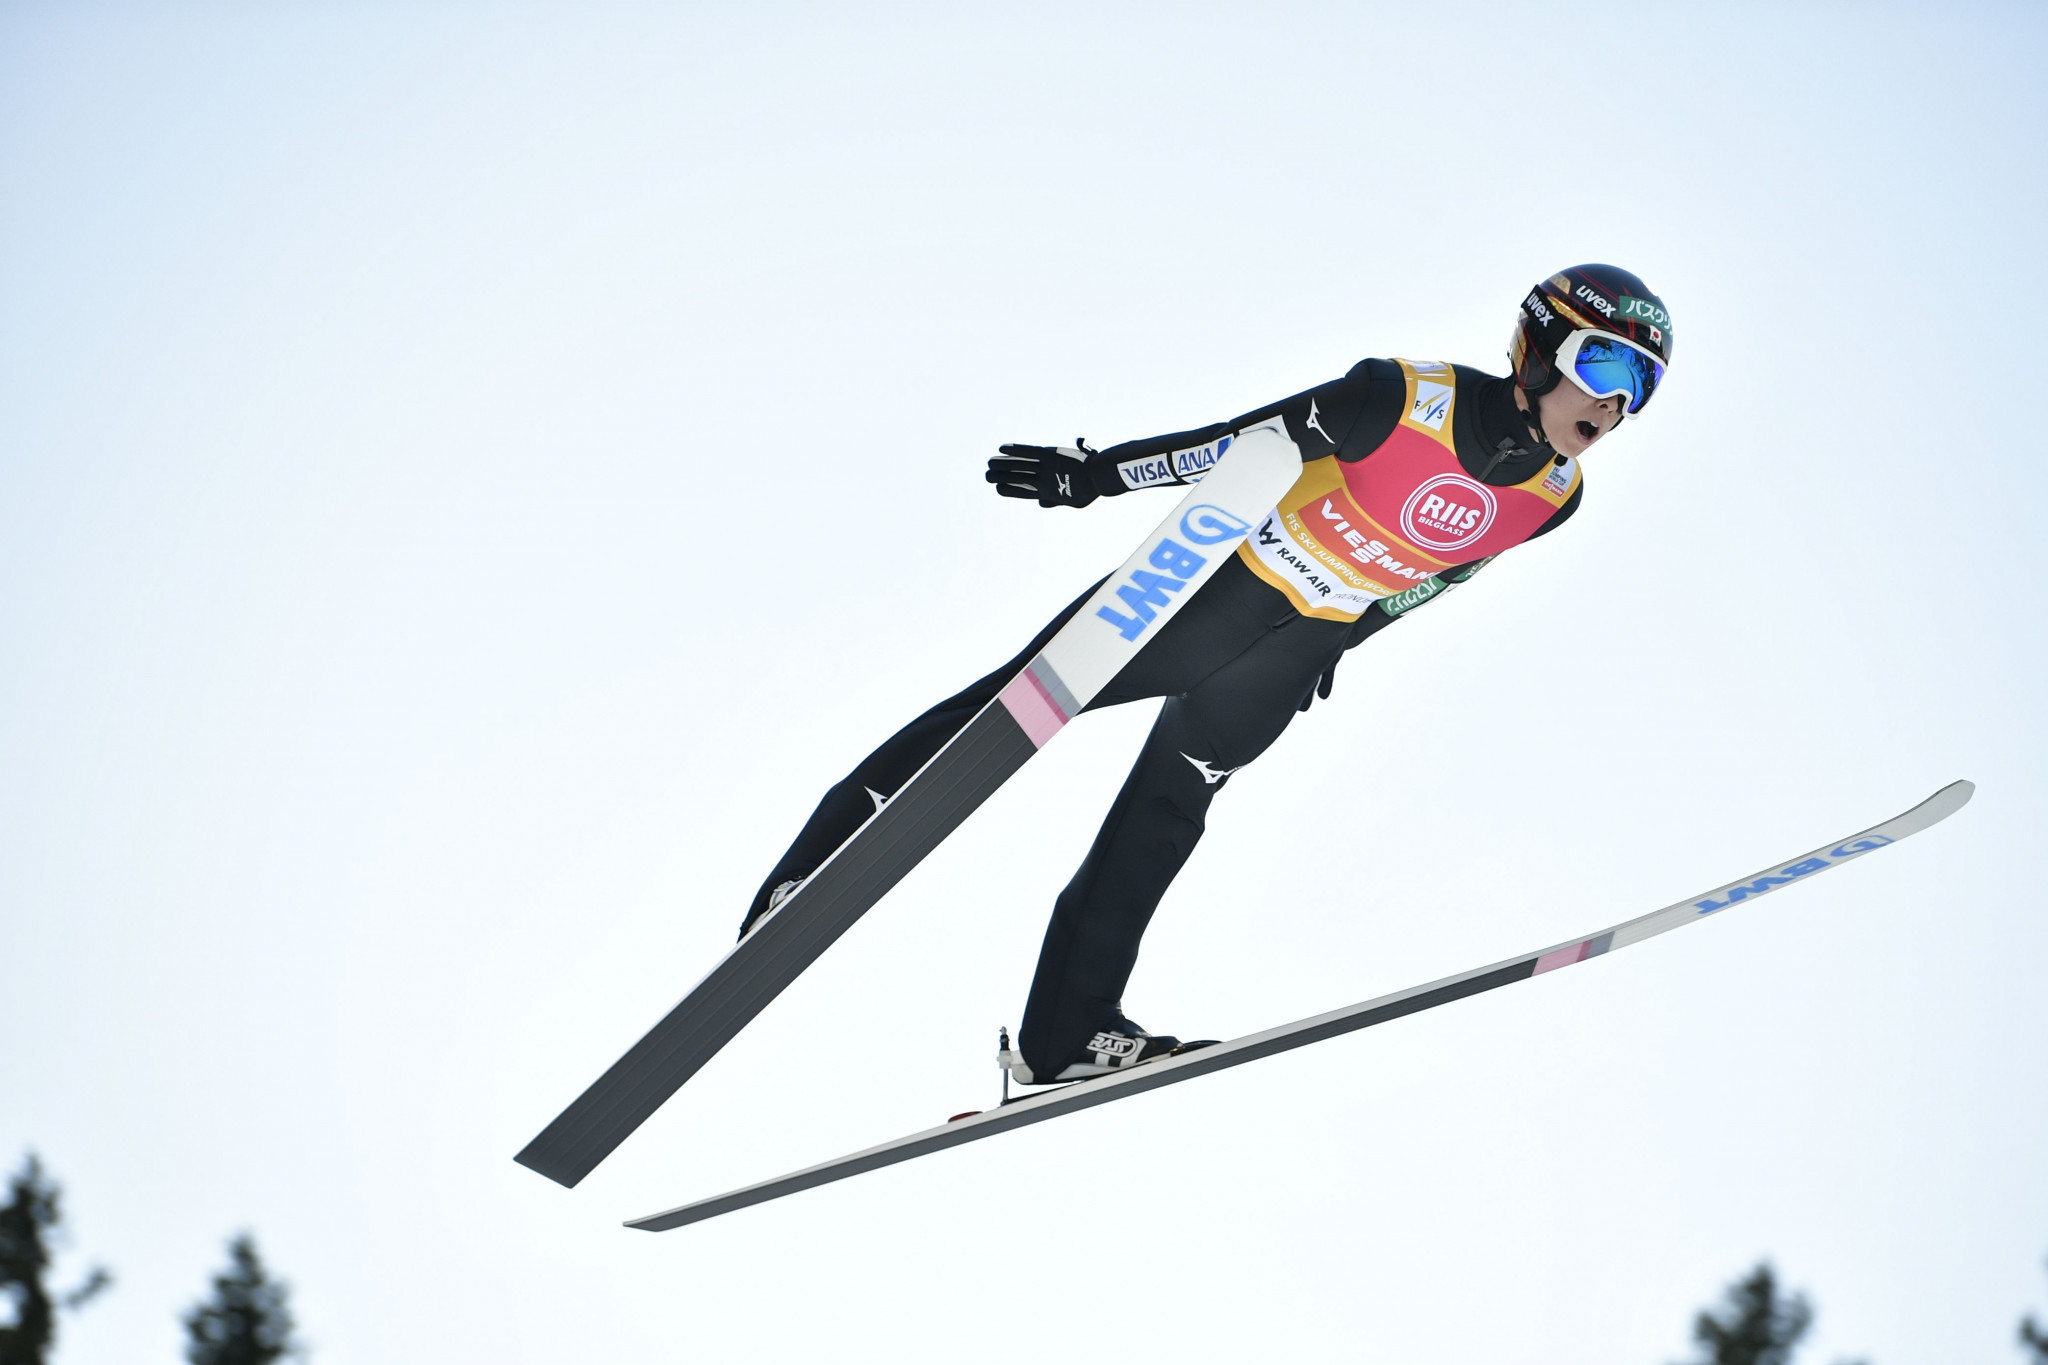 Kobayashi soars past Kraft in qualifying at FIS Ski Jumping World Cup in Vikersund